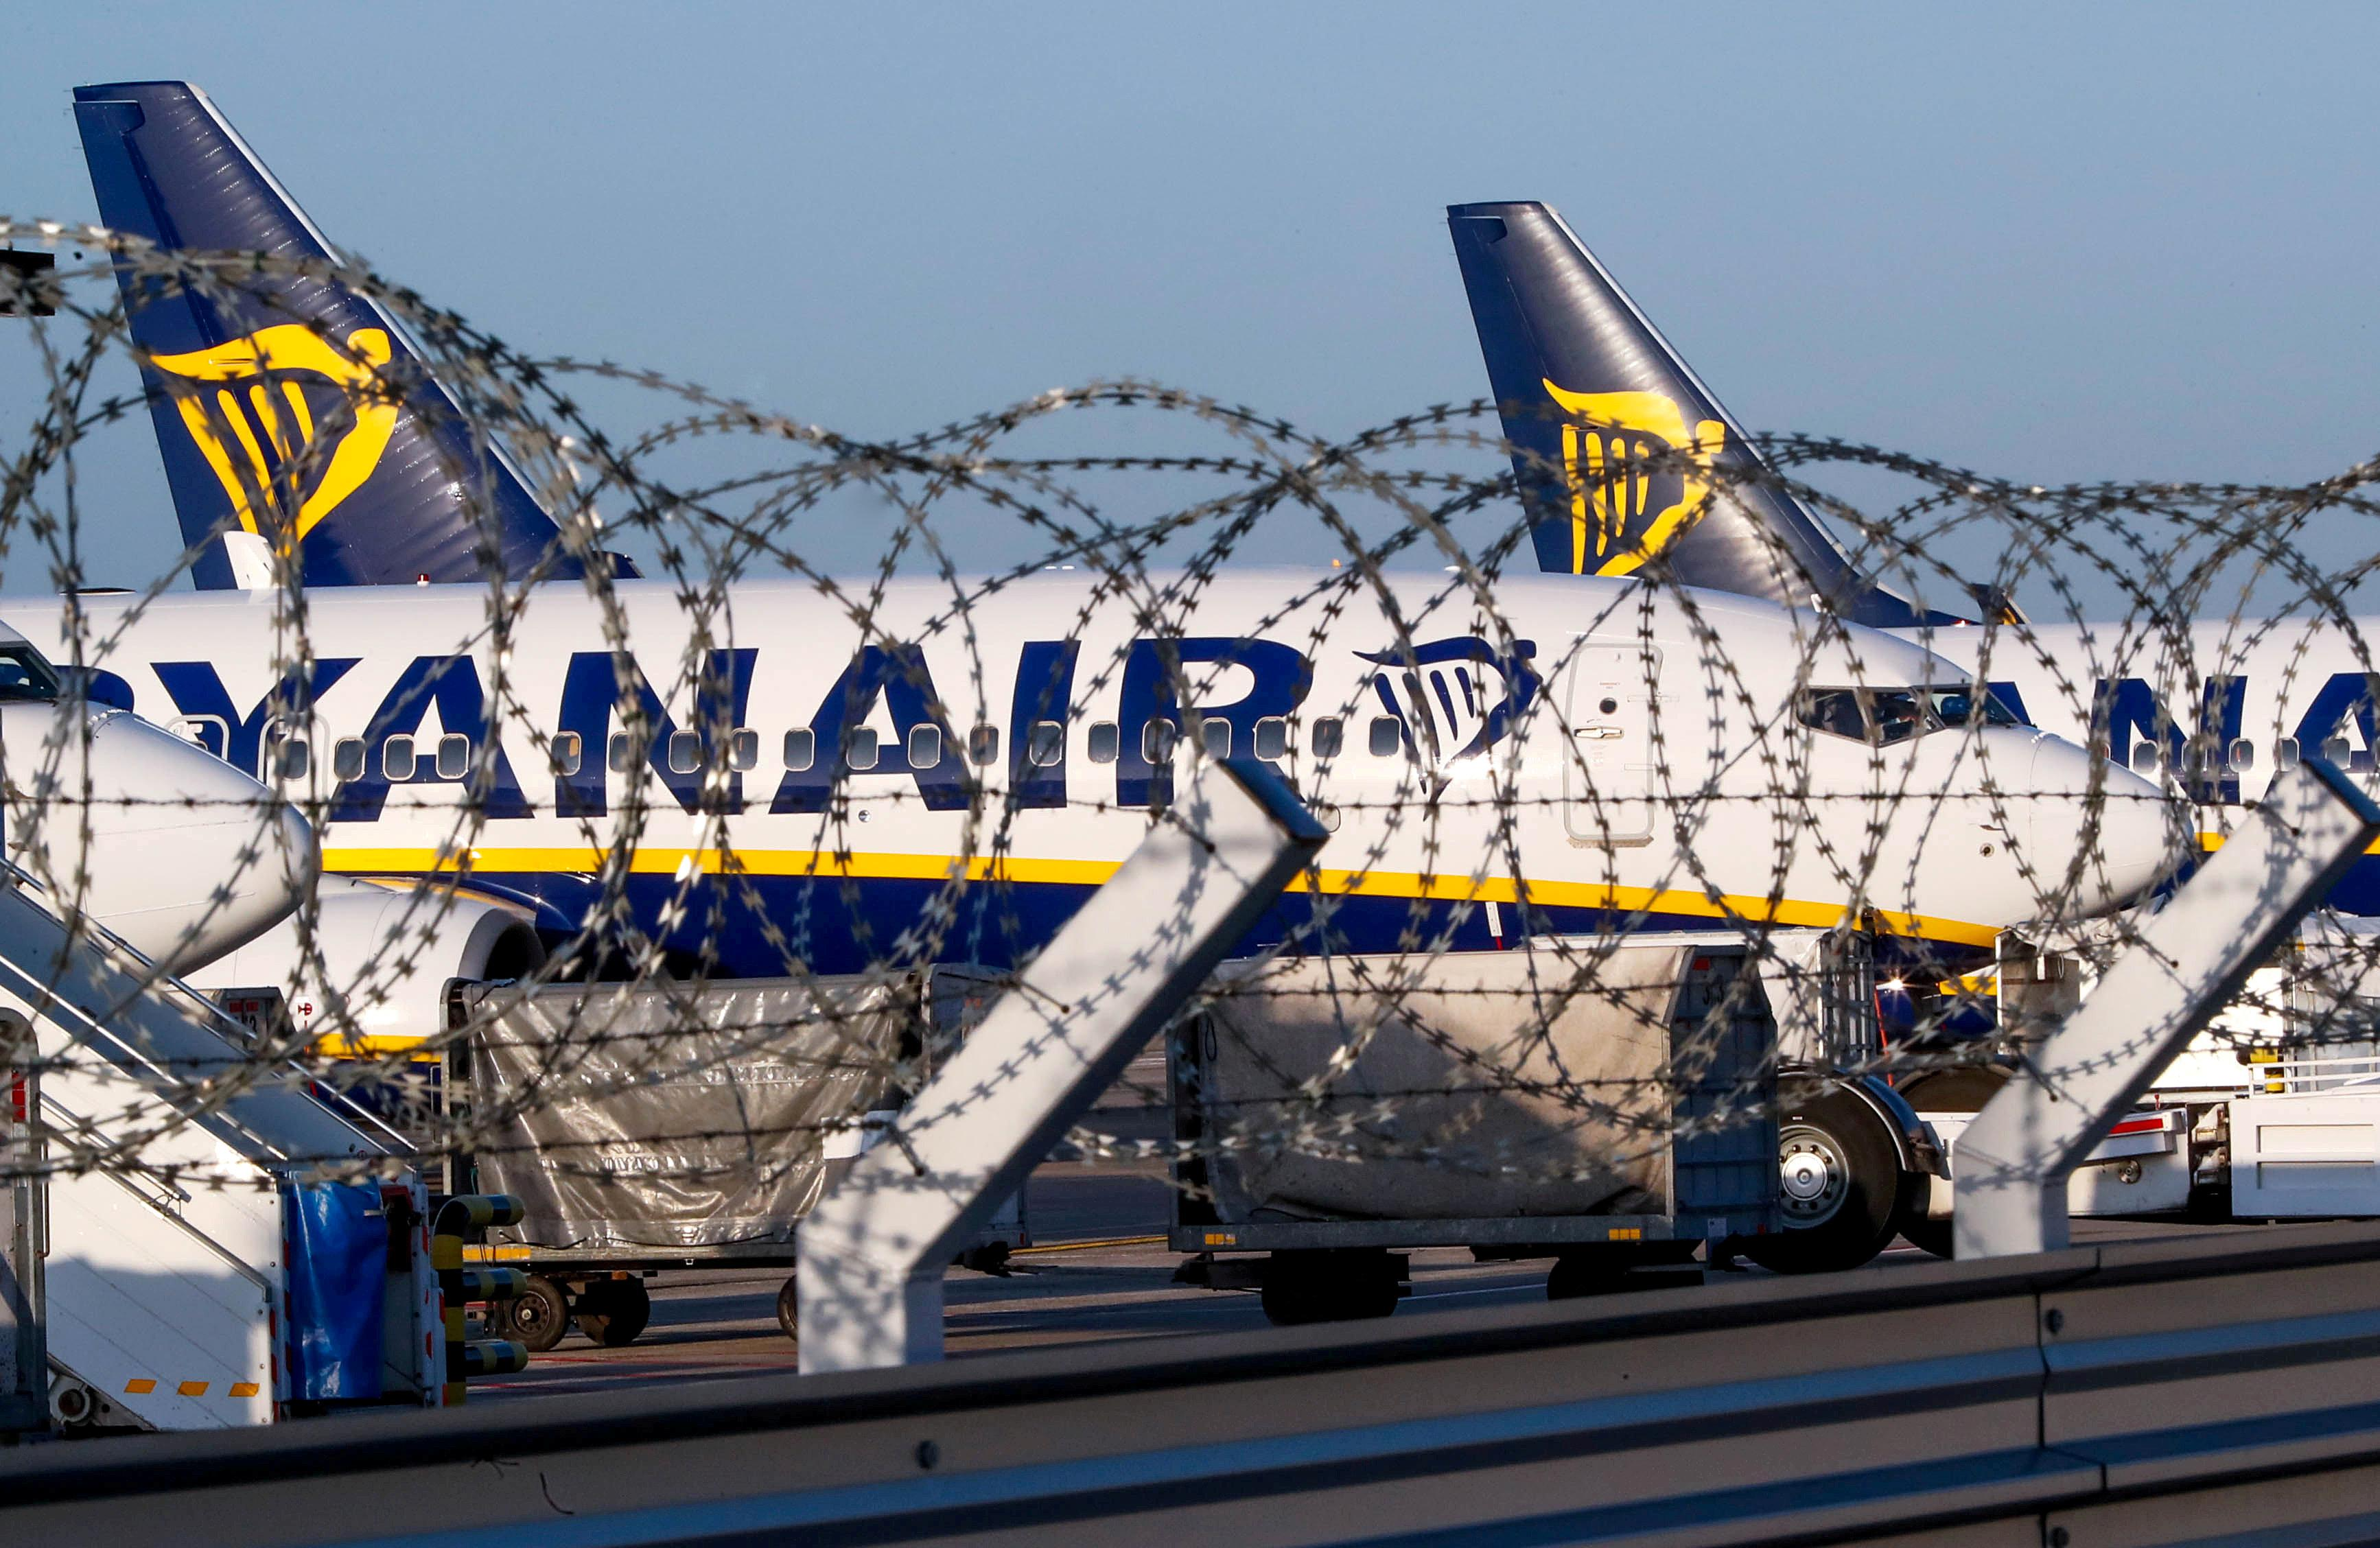 Ryanair warns on profit as strikes and fuel prices take toll - Reuters